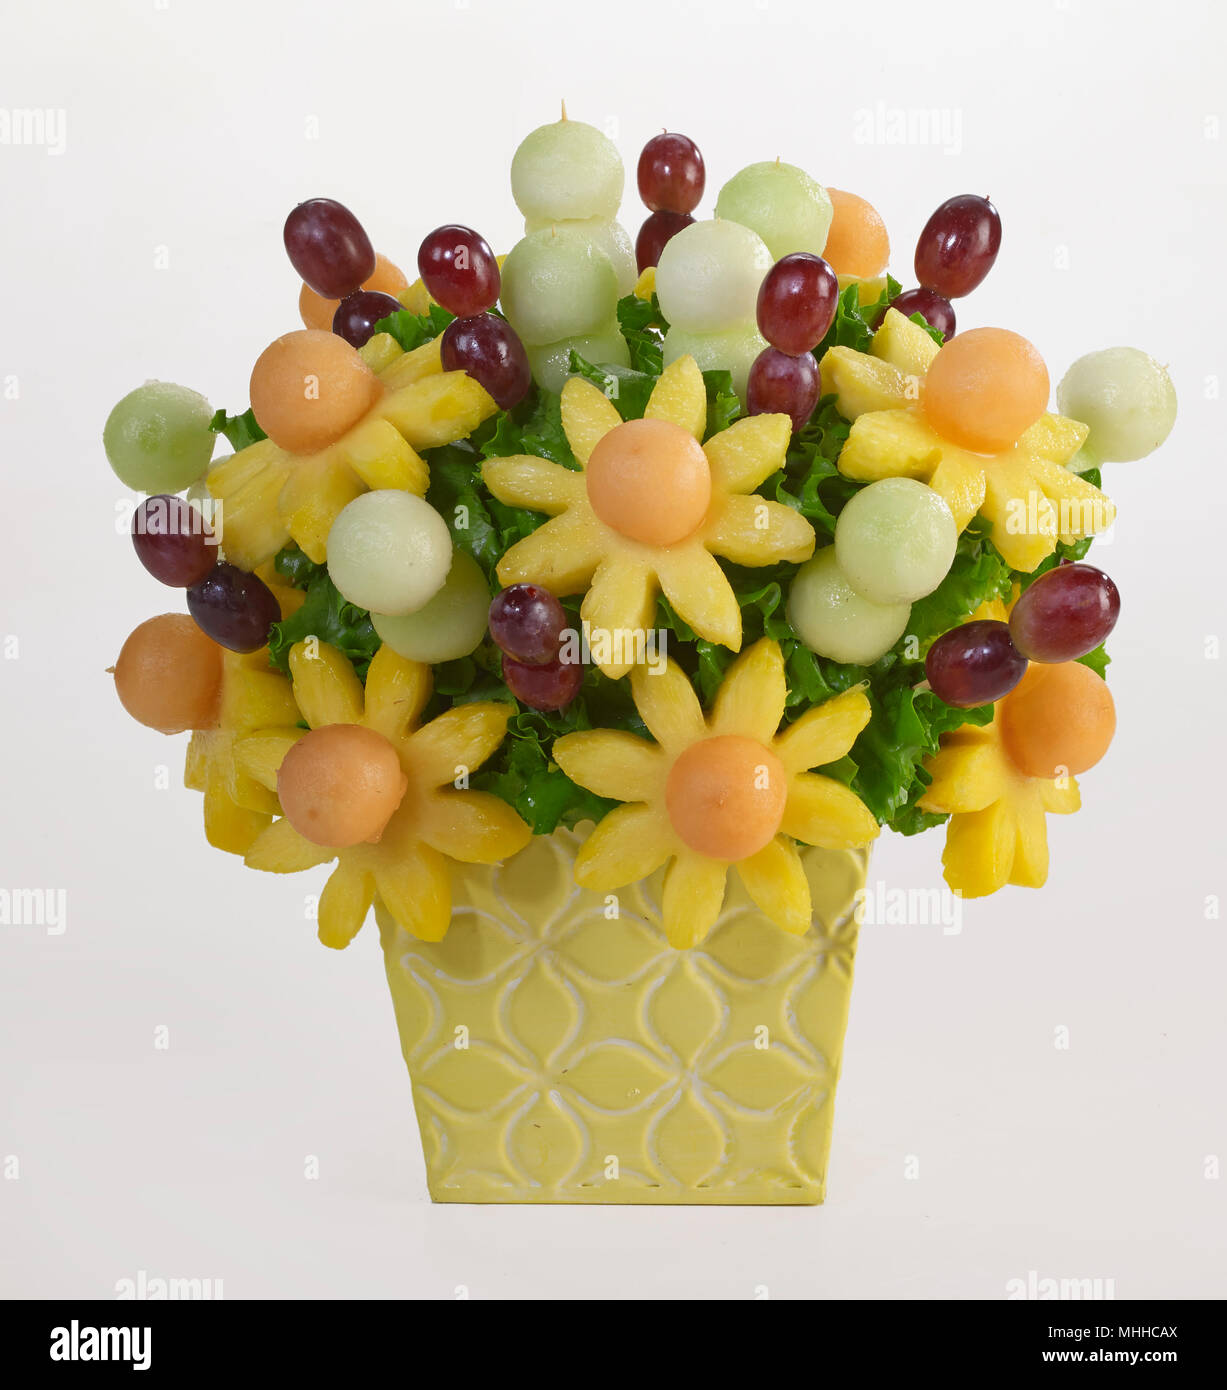 Edible Flowers Arrangements Stock Photos & Edible Flowers ...